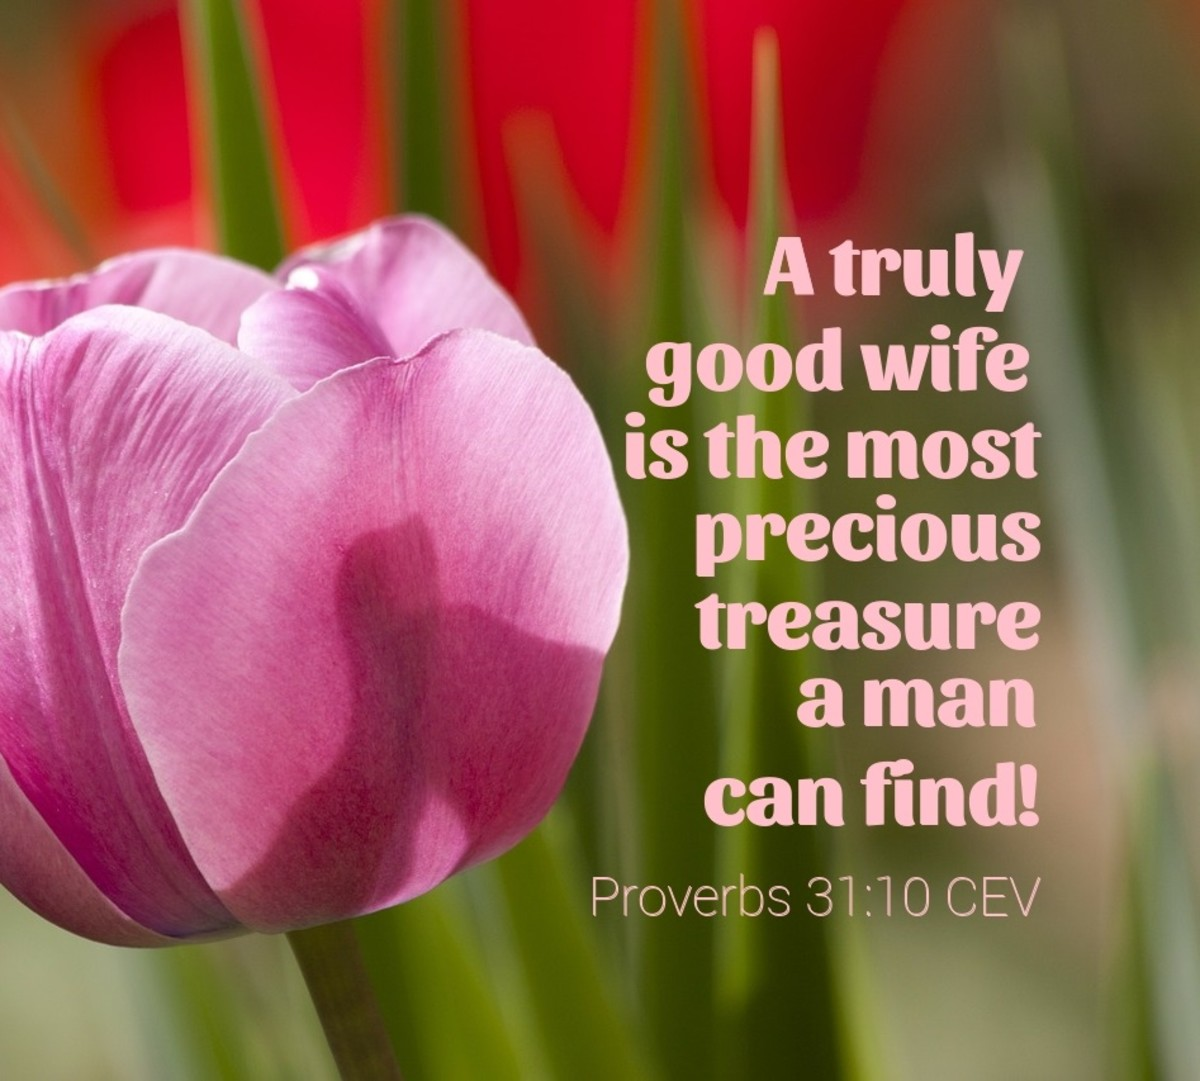 A truly good wife is the most precious treasure a man can find!